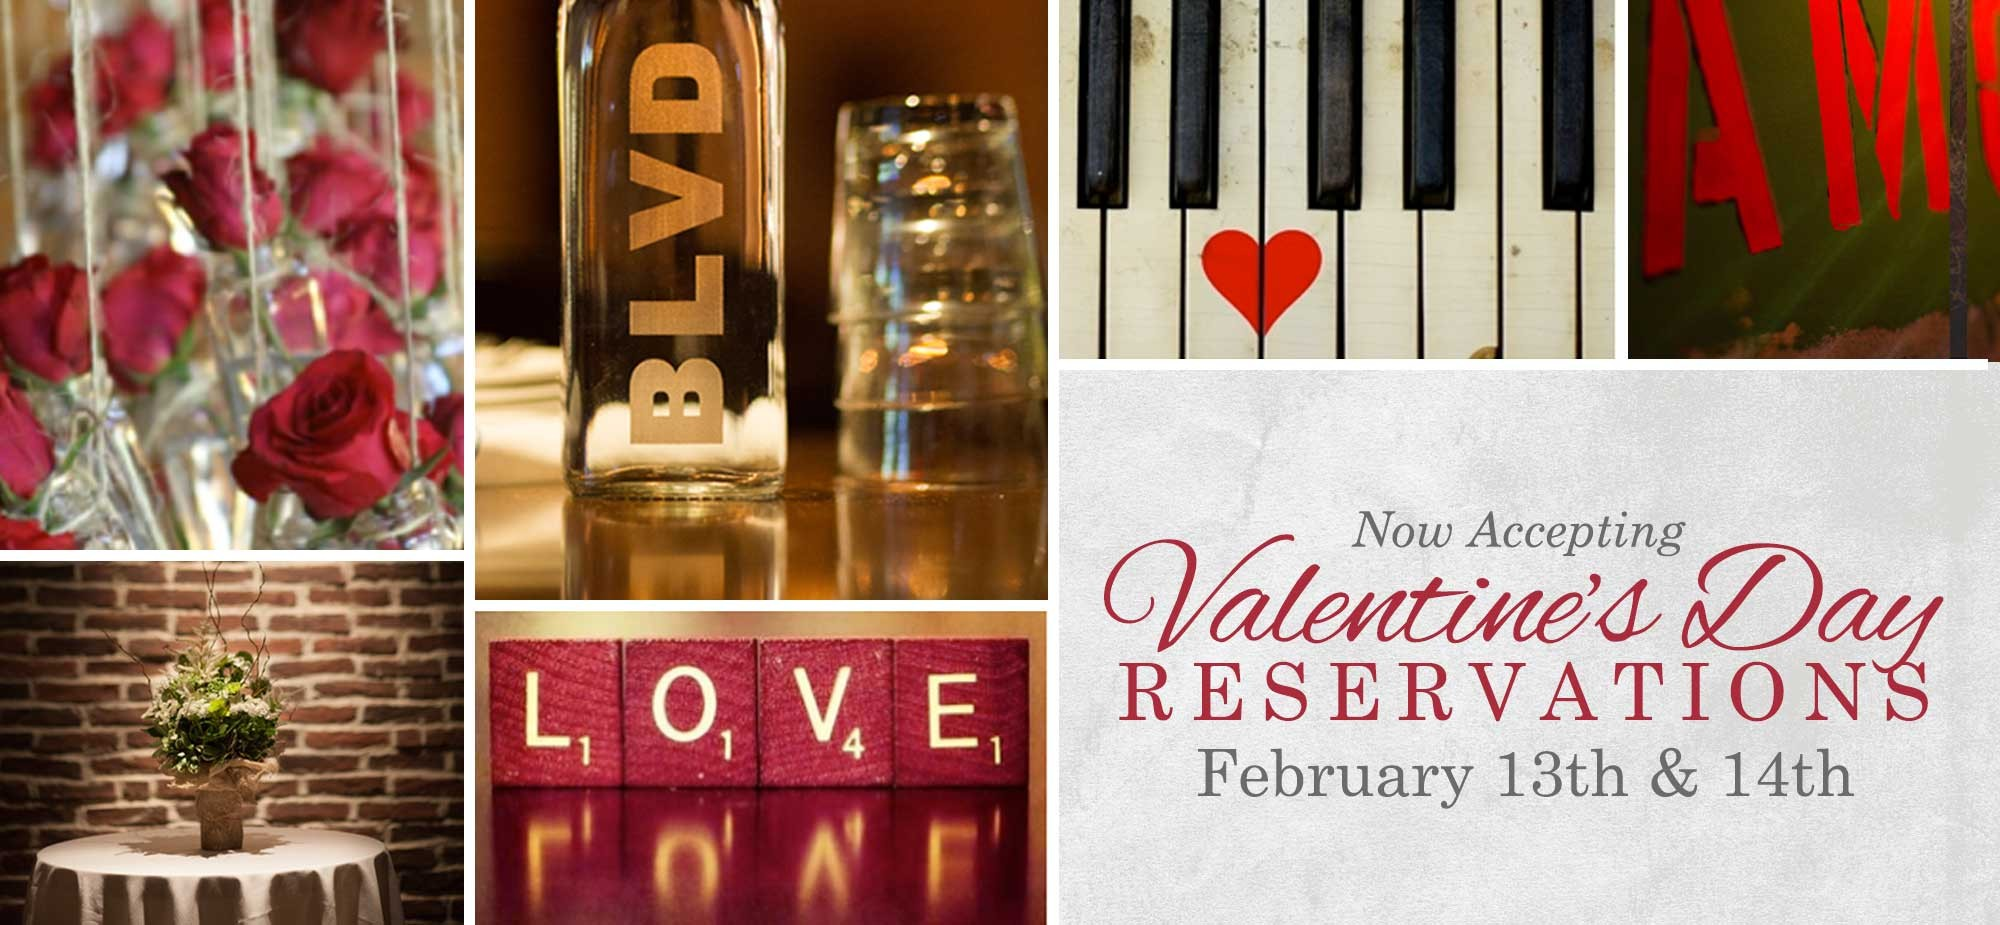 BLVD_Valentines_Day_Web_Slider_2000x925